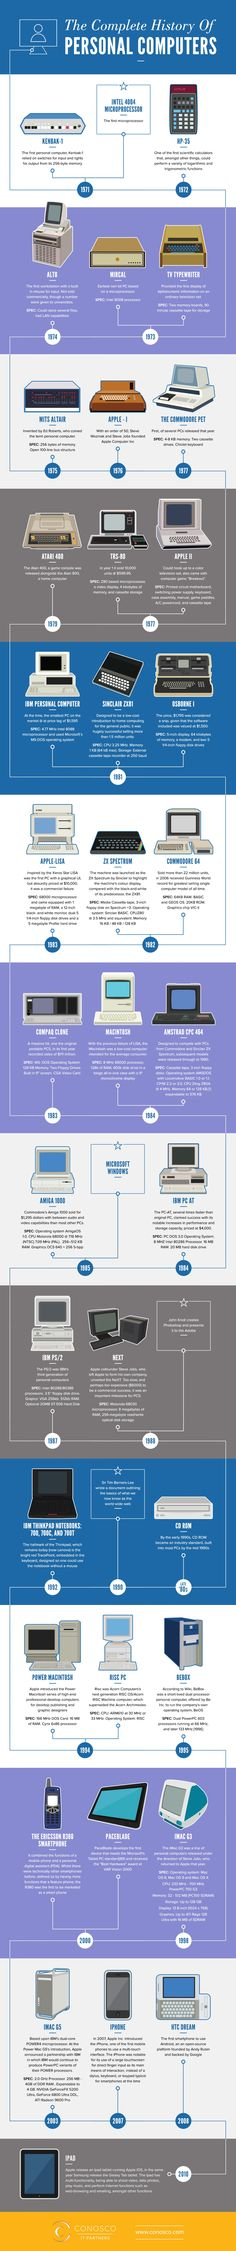 The Complete History of Personal Computers #infographic